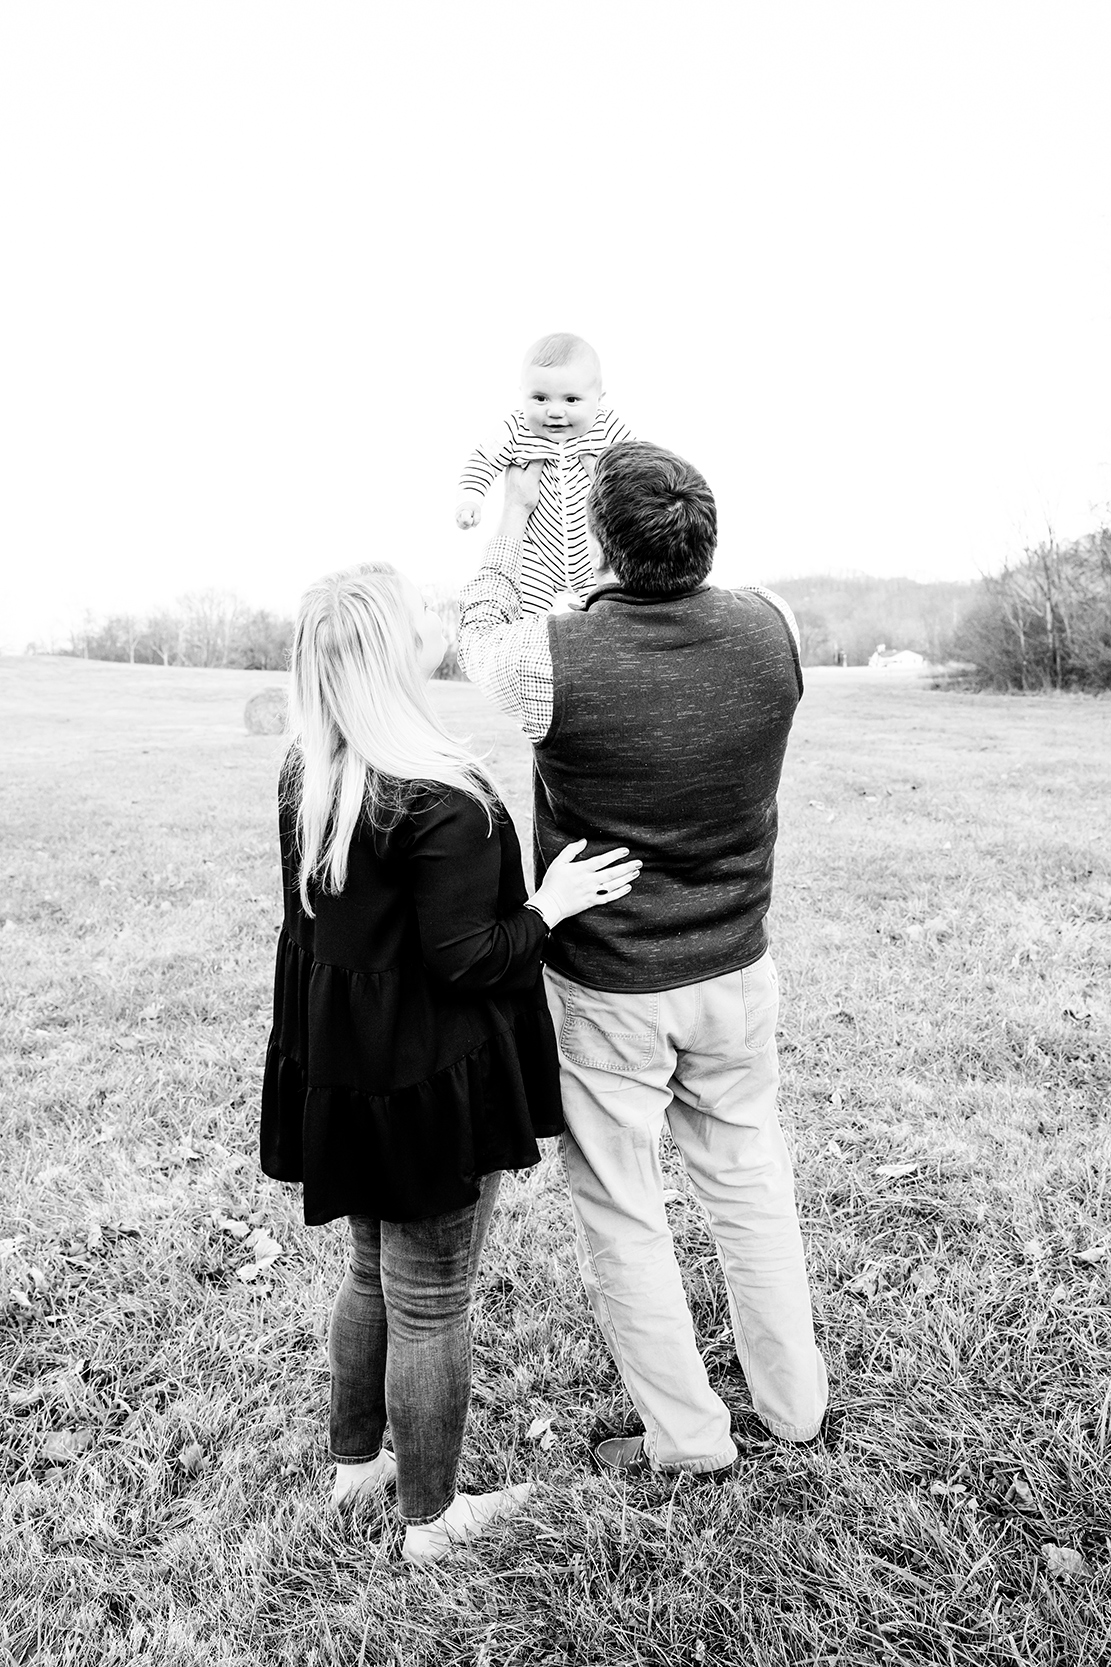 Cary Family Photos at Bold Rock Cider - Image Property of www.j-dphoto.com